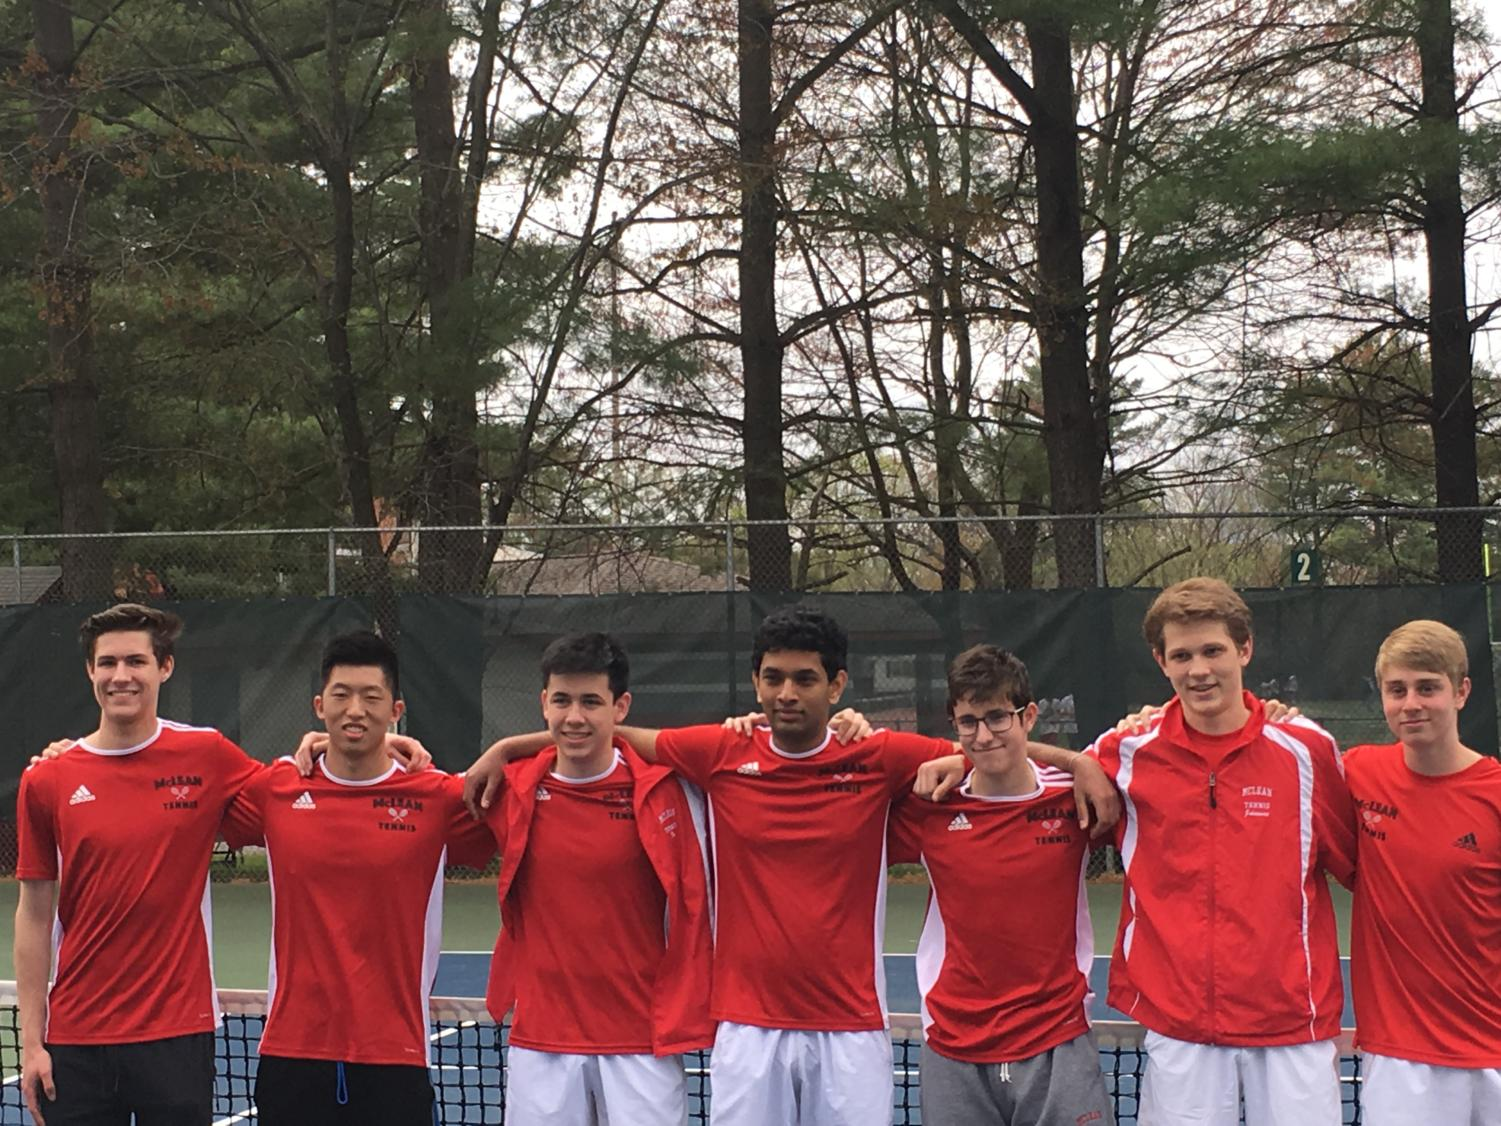 Seven seniors will be leaving the tennis team after this year. Senior night was their last home match.